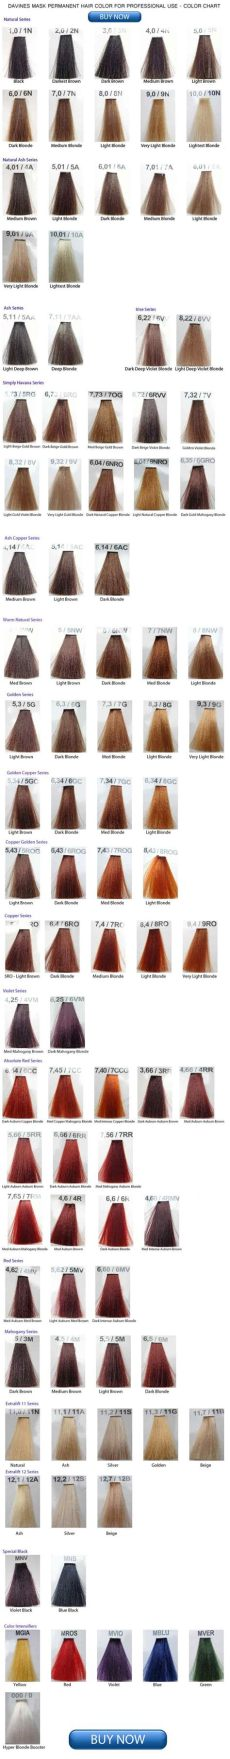 davines mask with vibrachrom color chart davines mask permanent hair color swatch book